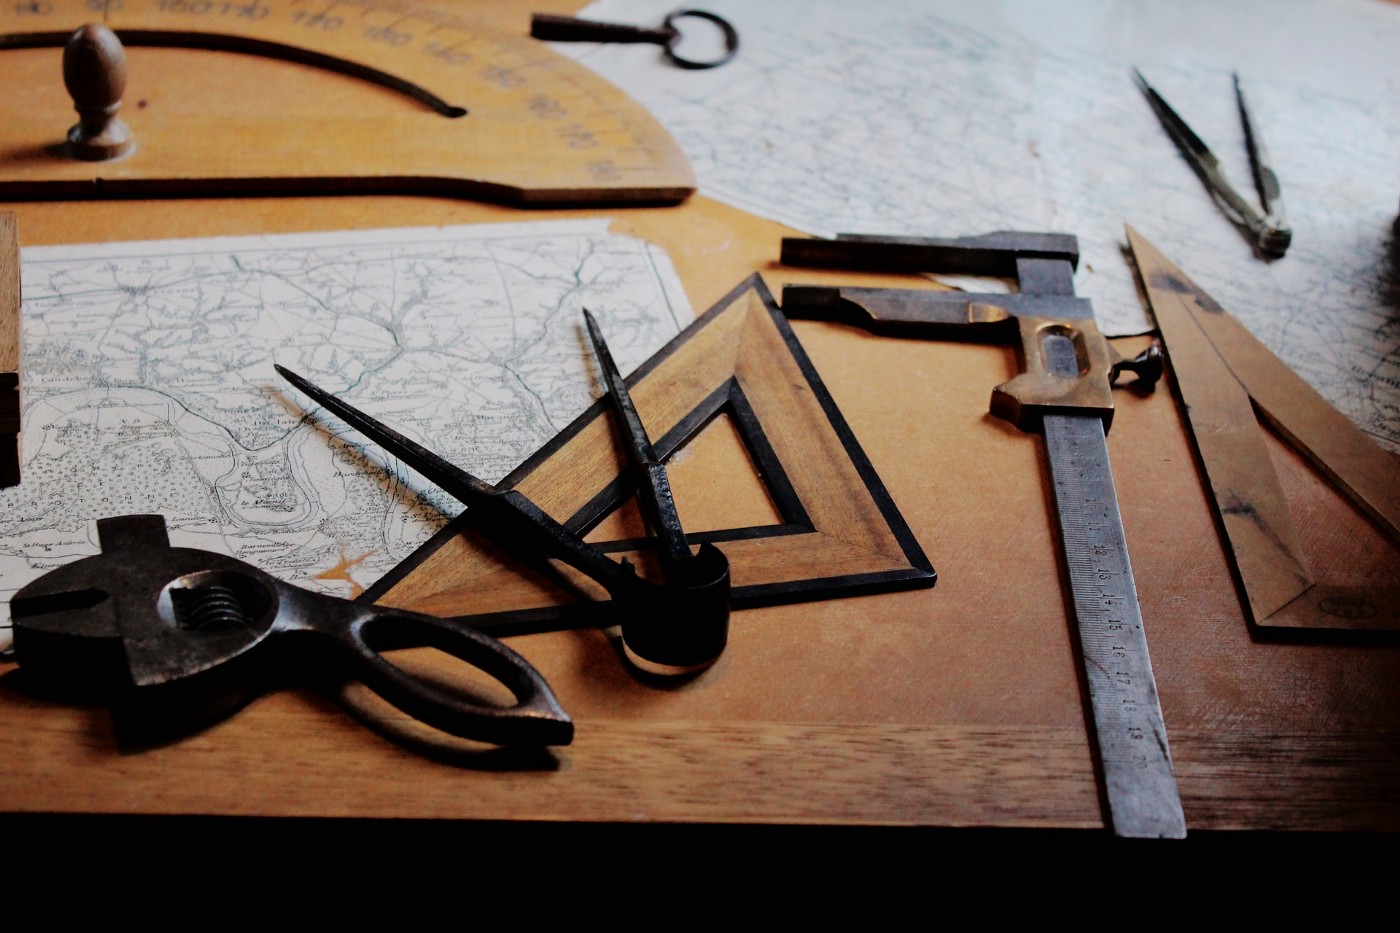 A work table covered with tools